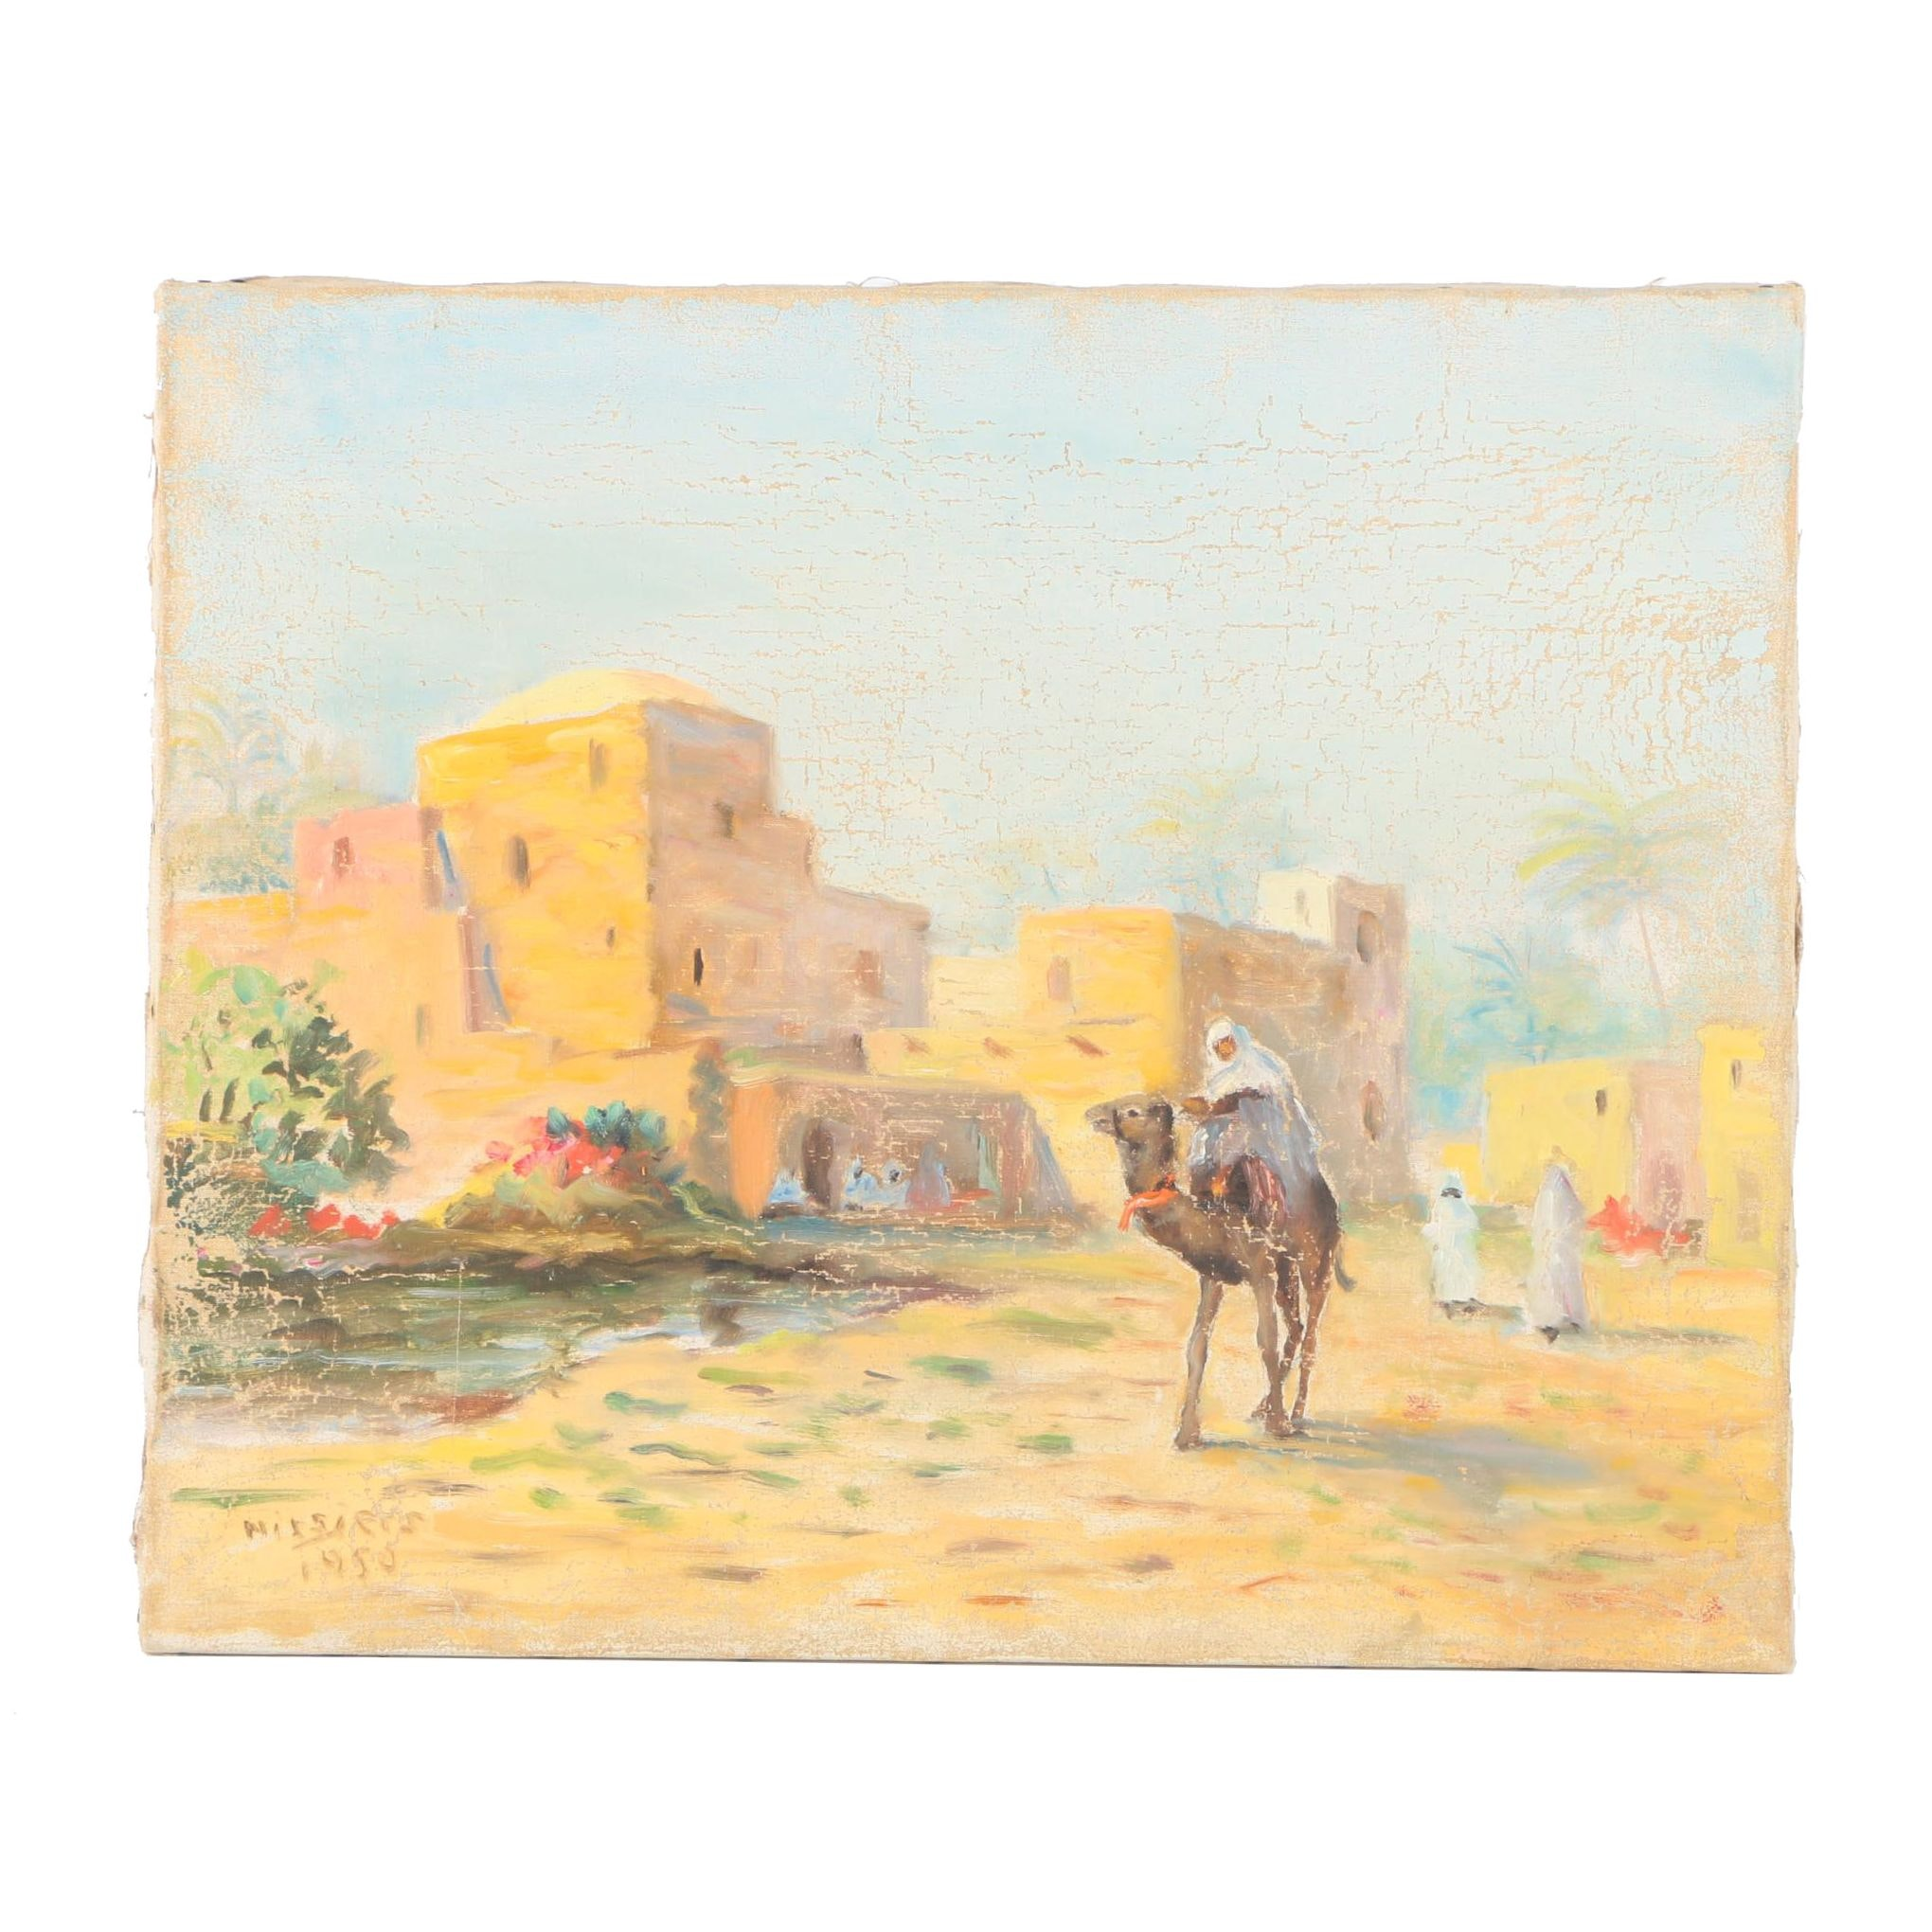 Oil Painting on Canvas of Person Riding a Camel